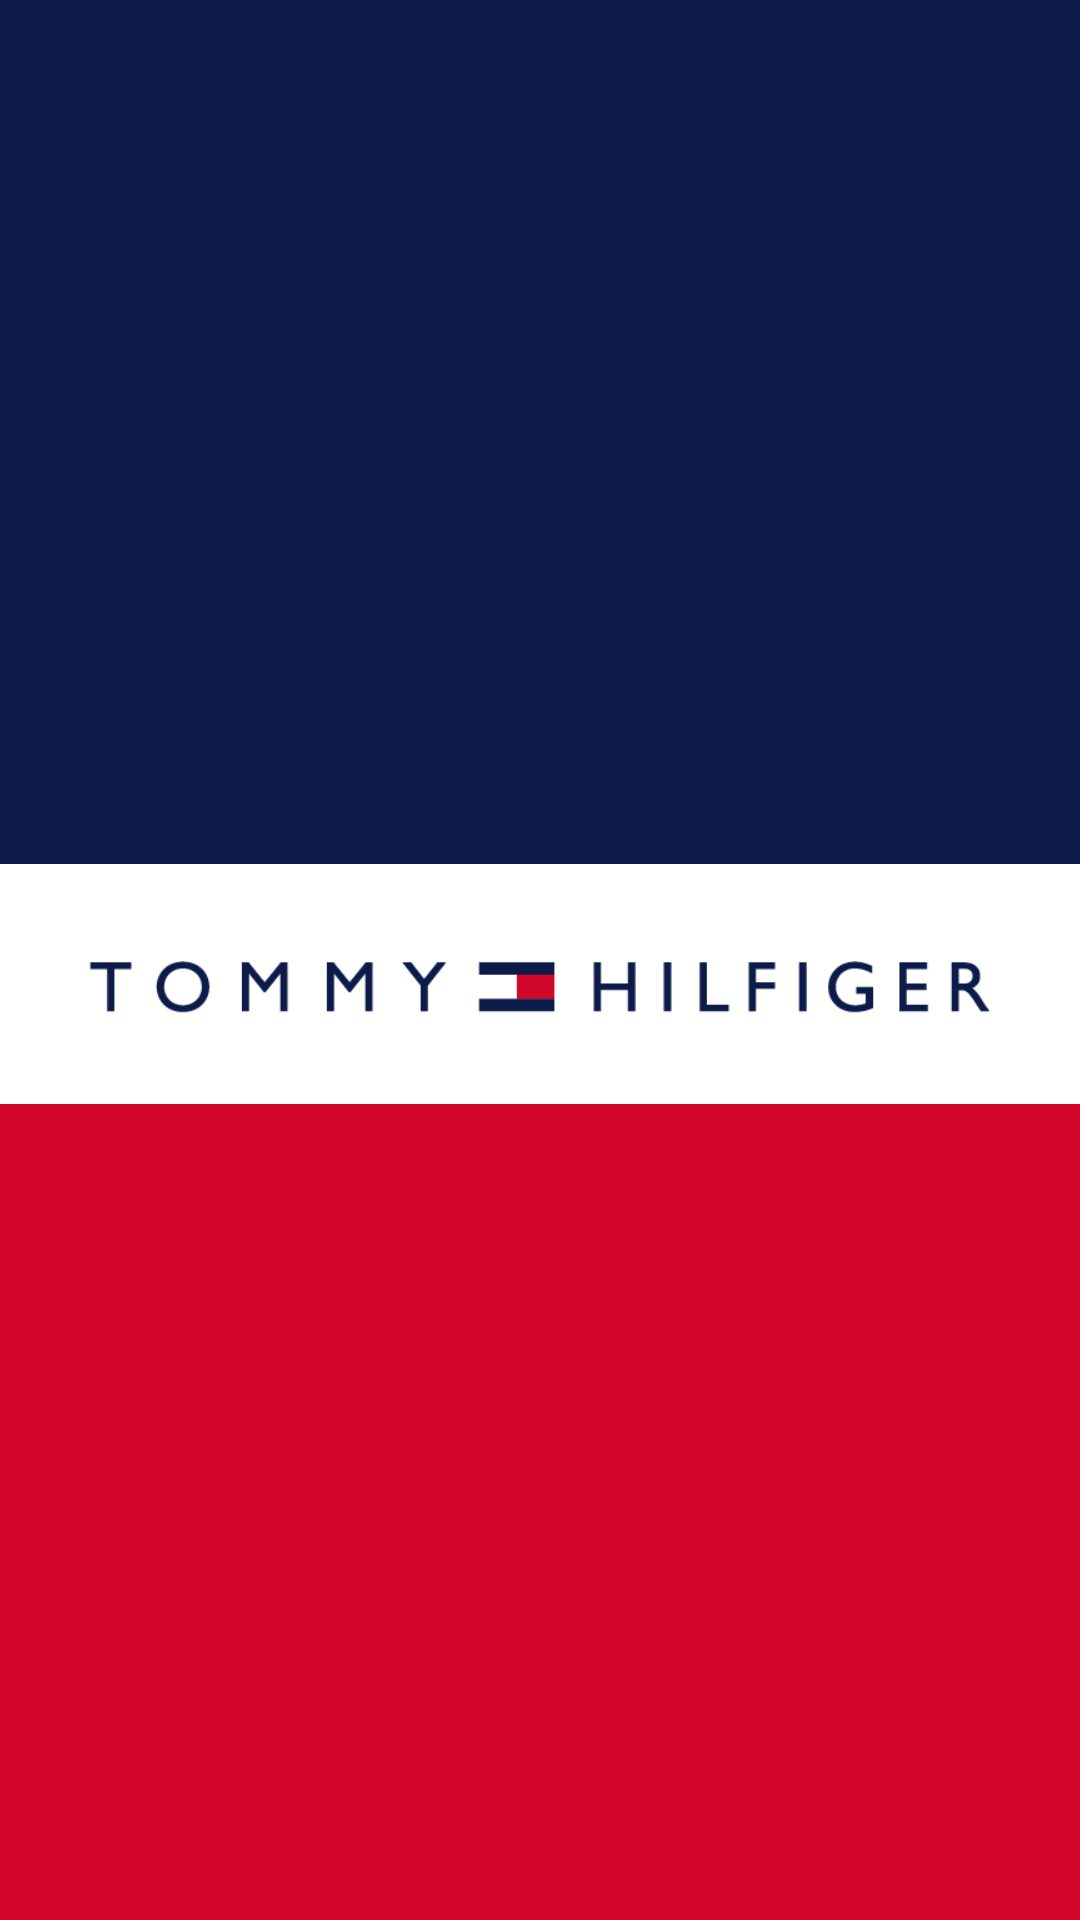 tommyhilfiger20 - TOMMY HILFIGER/トミー・ヒルフィガーの高画質スマホ壁紙20枚 [iPhone&Androidに対応]